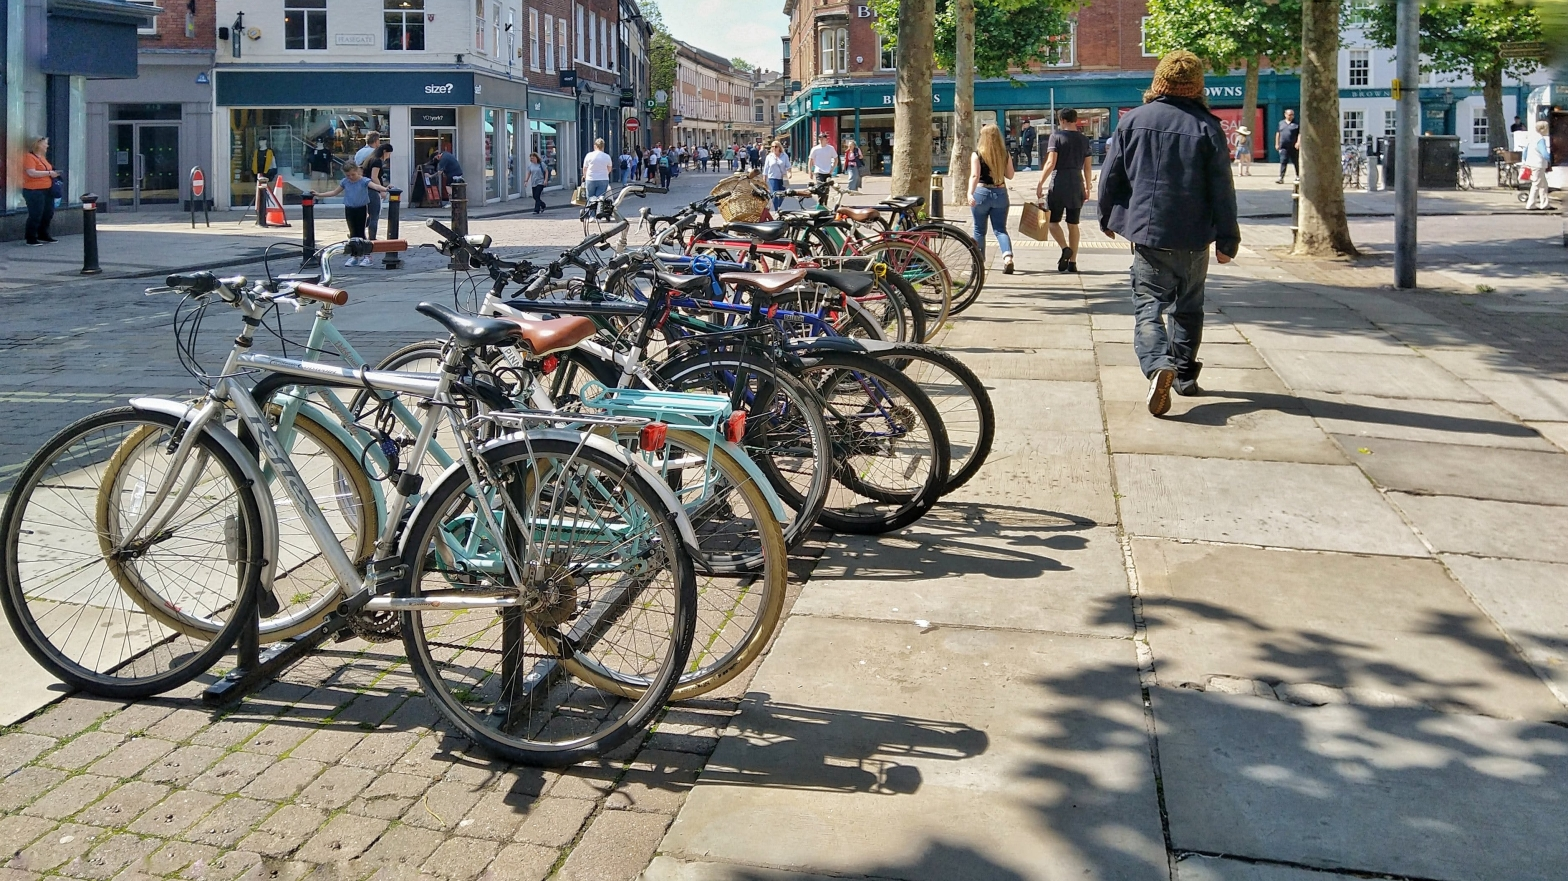 Cycle parking in Parliament Street, York